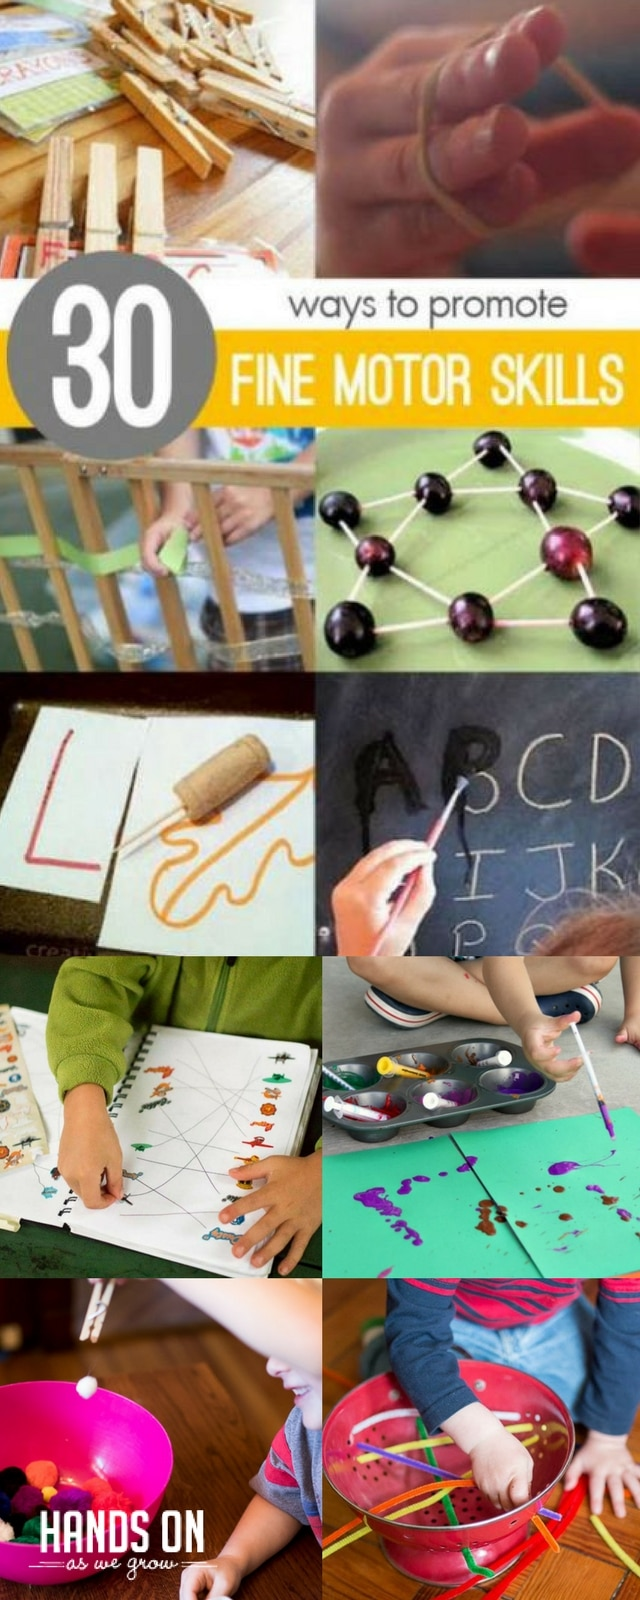 30 fine motor materials and activities for toddlers and preschoolers to work on fine motor skills.